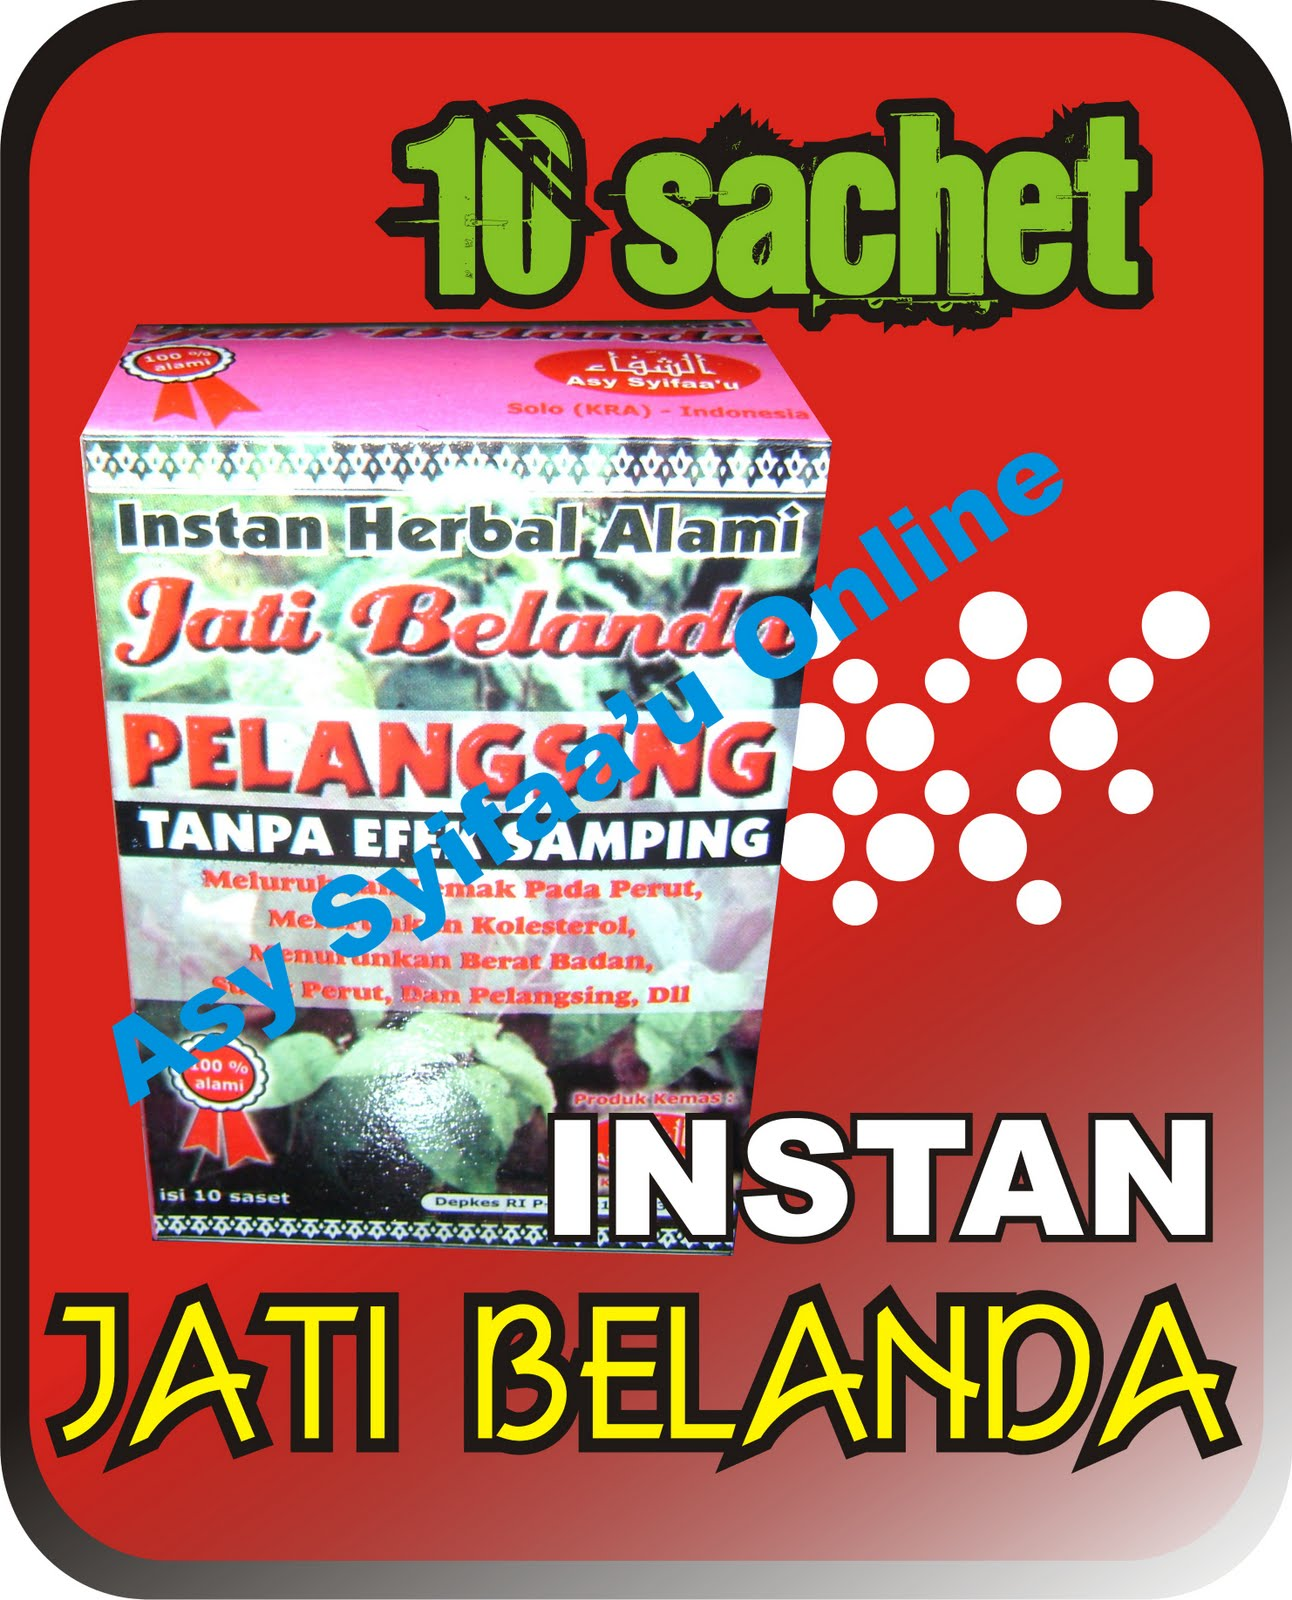 Herbal Instan Asy Syifaa'u: Herbal Instan Asy Syifaa'u